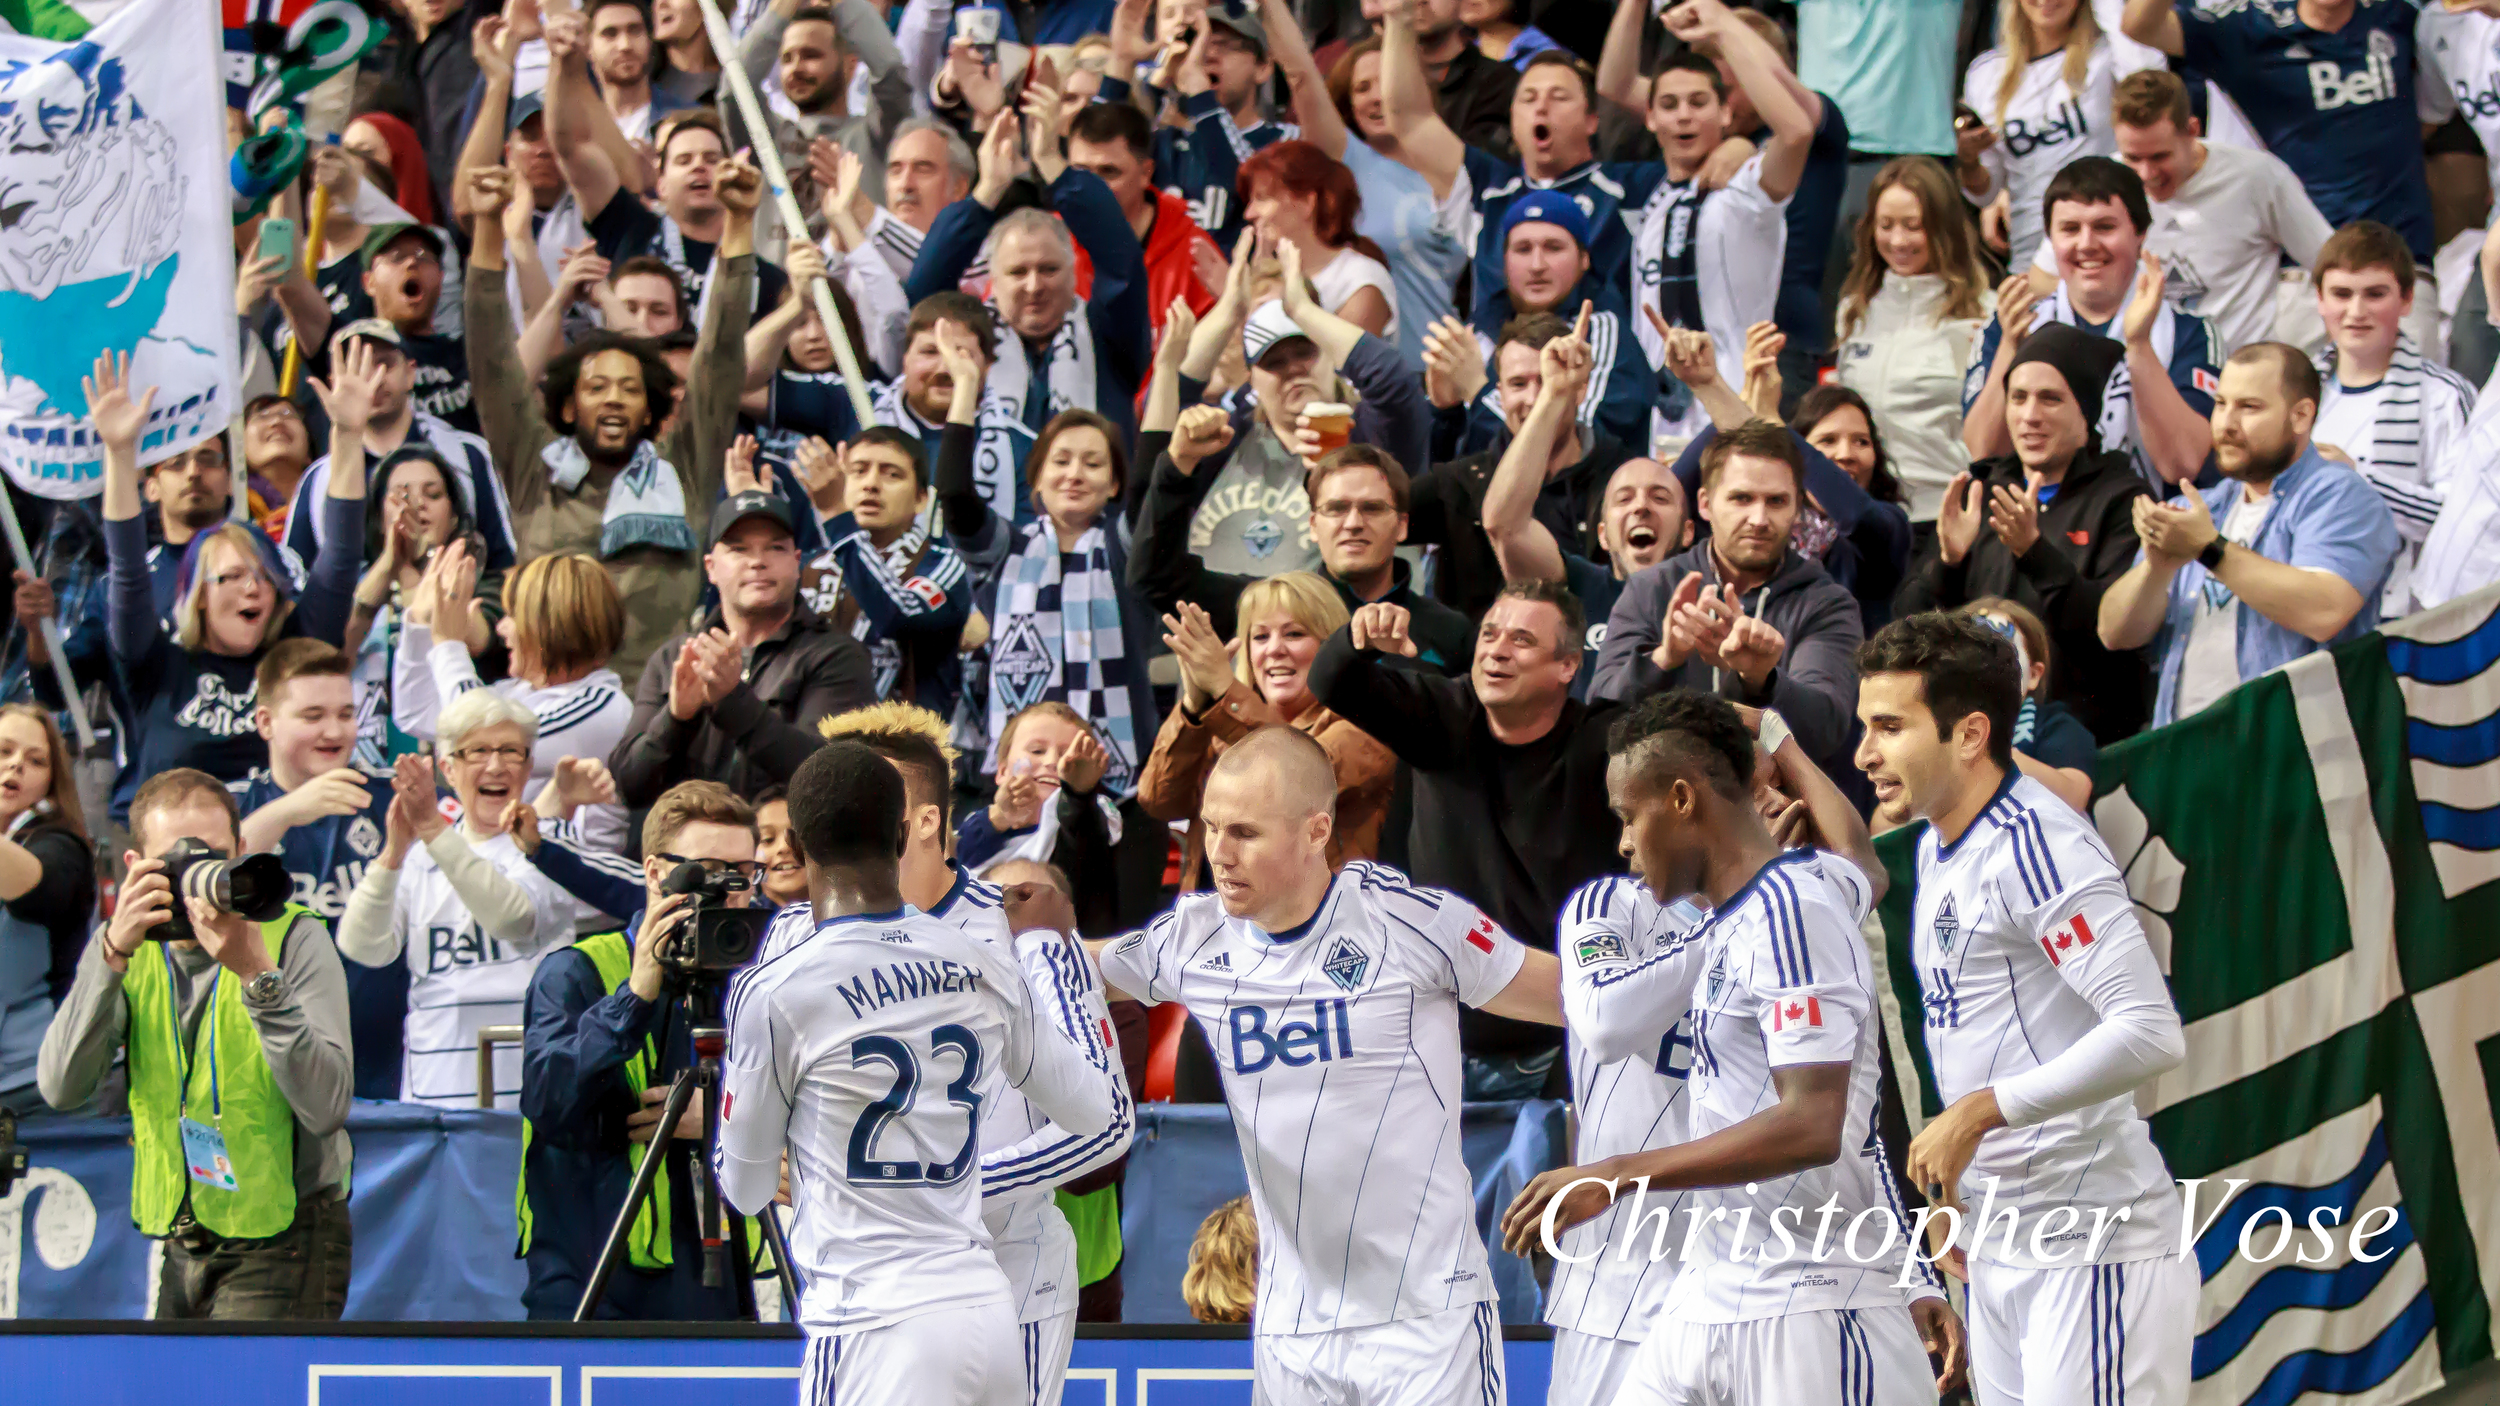 2014-04-19 Darren Mattocks Goal Celebration 2.jpg